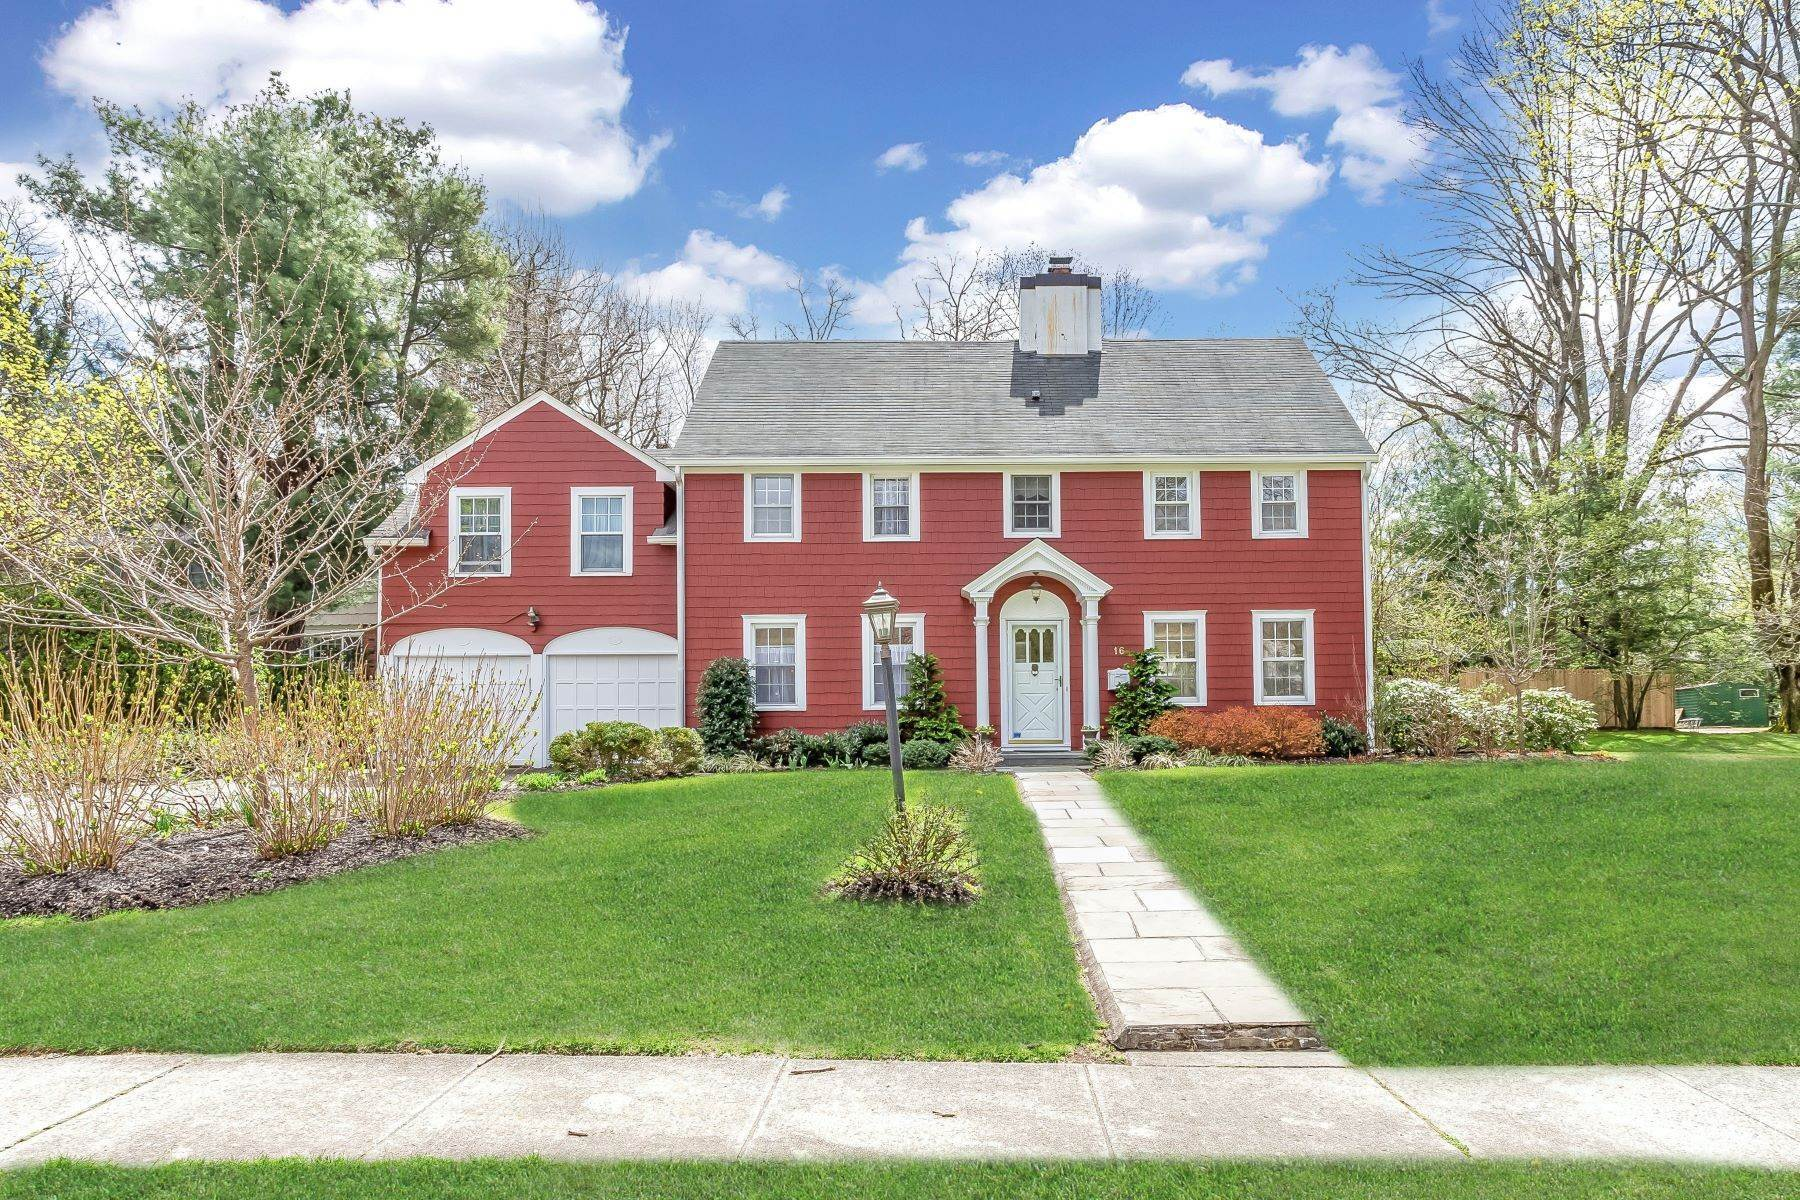 Single Family Homes for Sale at 16 Terrace Drive, Port Washington, Ny, 11050 16 Terrace Drive Port Washington, New York 11050 United States